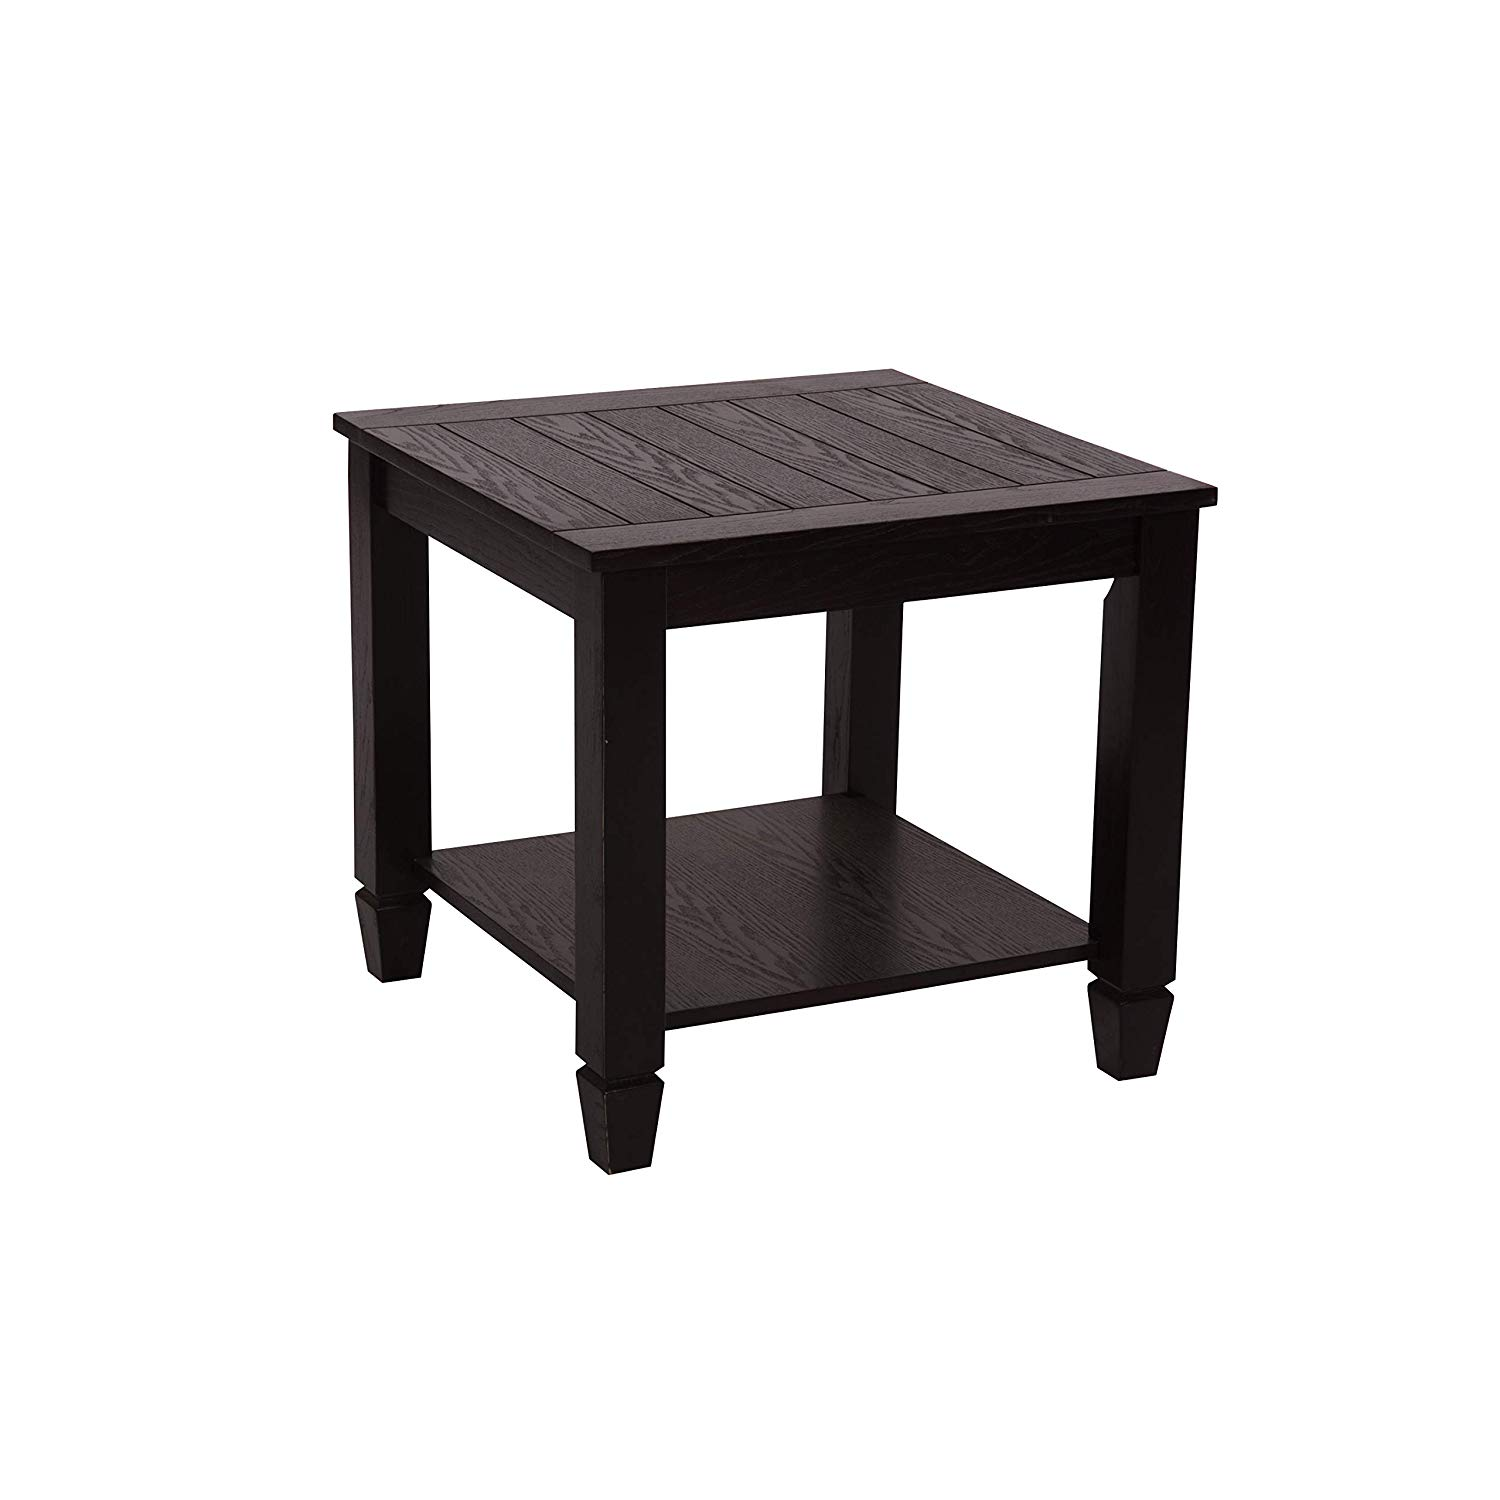 tms zenith end table kitchen dining tttqro espresso round fire pit kmart childrens bedroom furniture pier one ethan allen rattan diy banquette seating broyhill rustic living room